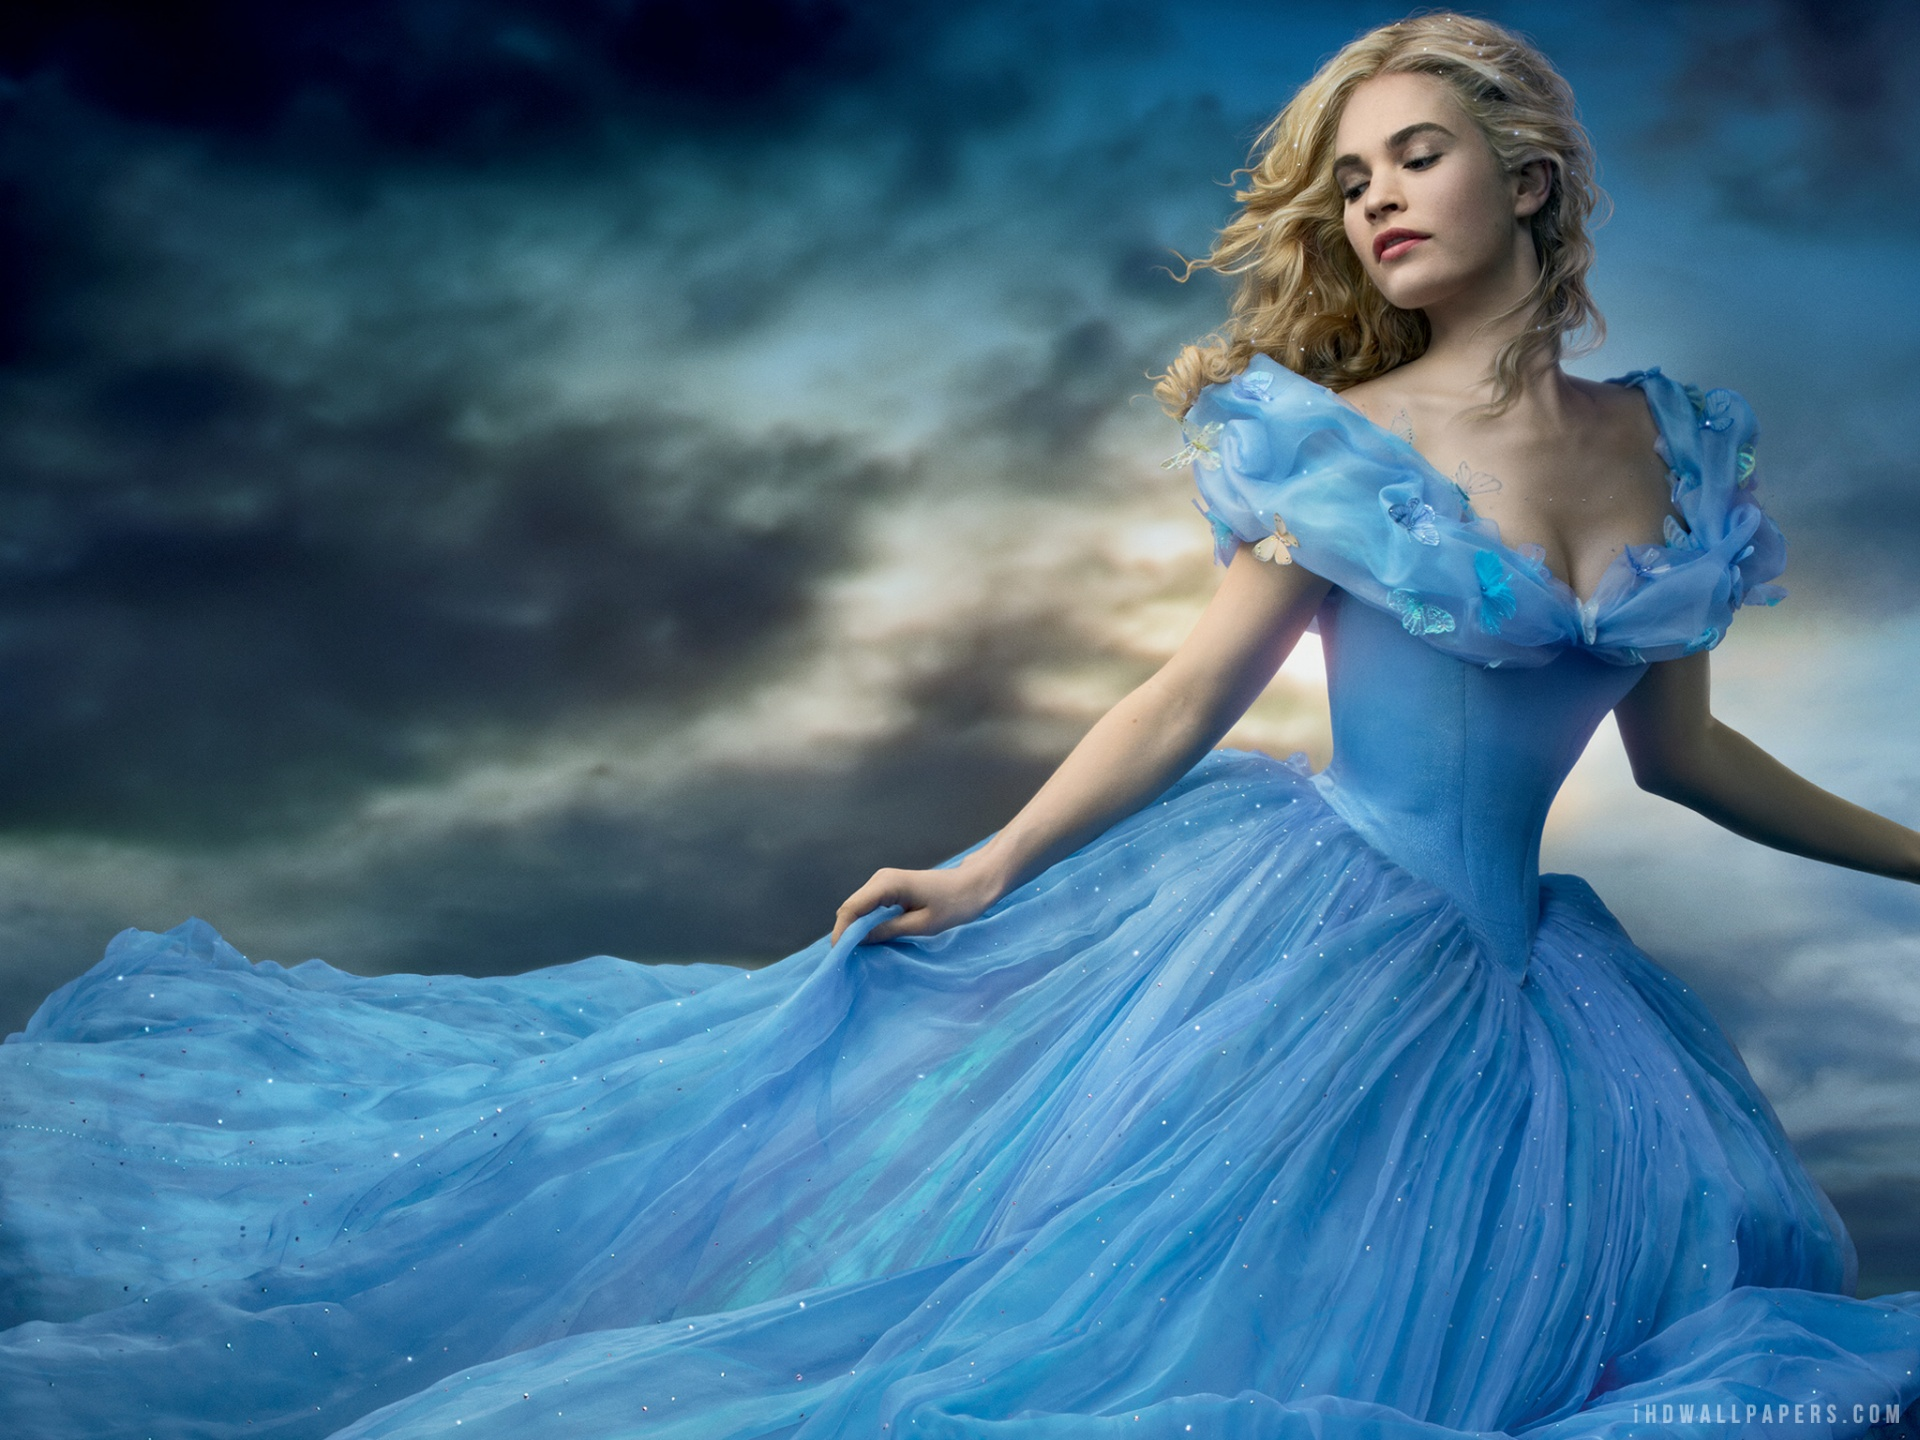 Cinderella 2015 Movie HD Wallpaper   iHD Wallpapers 1920x1440